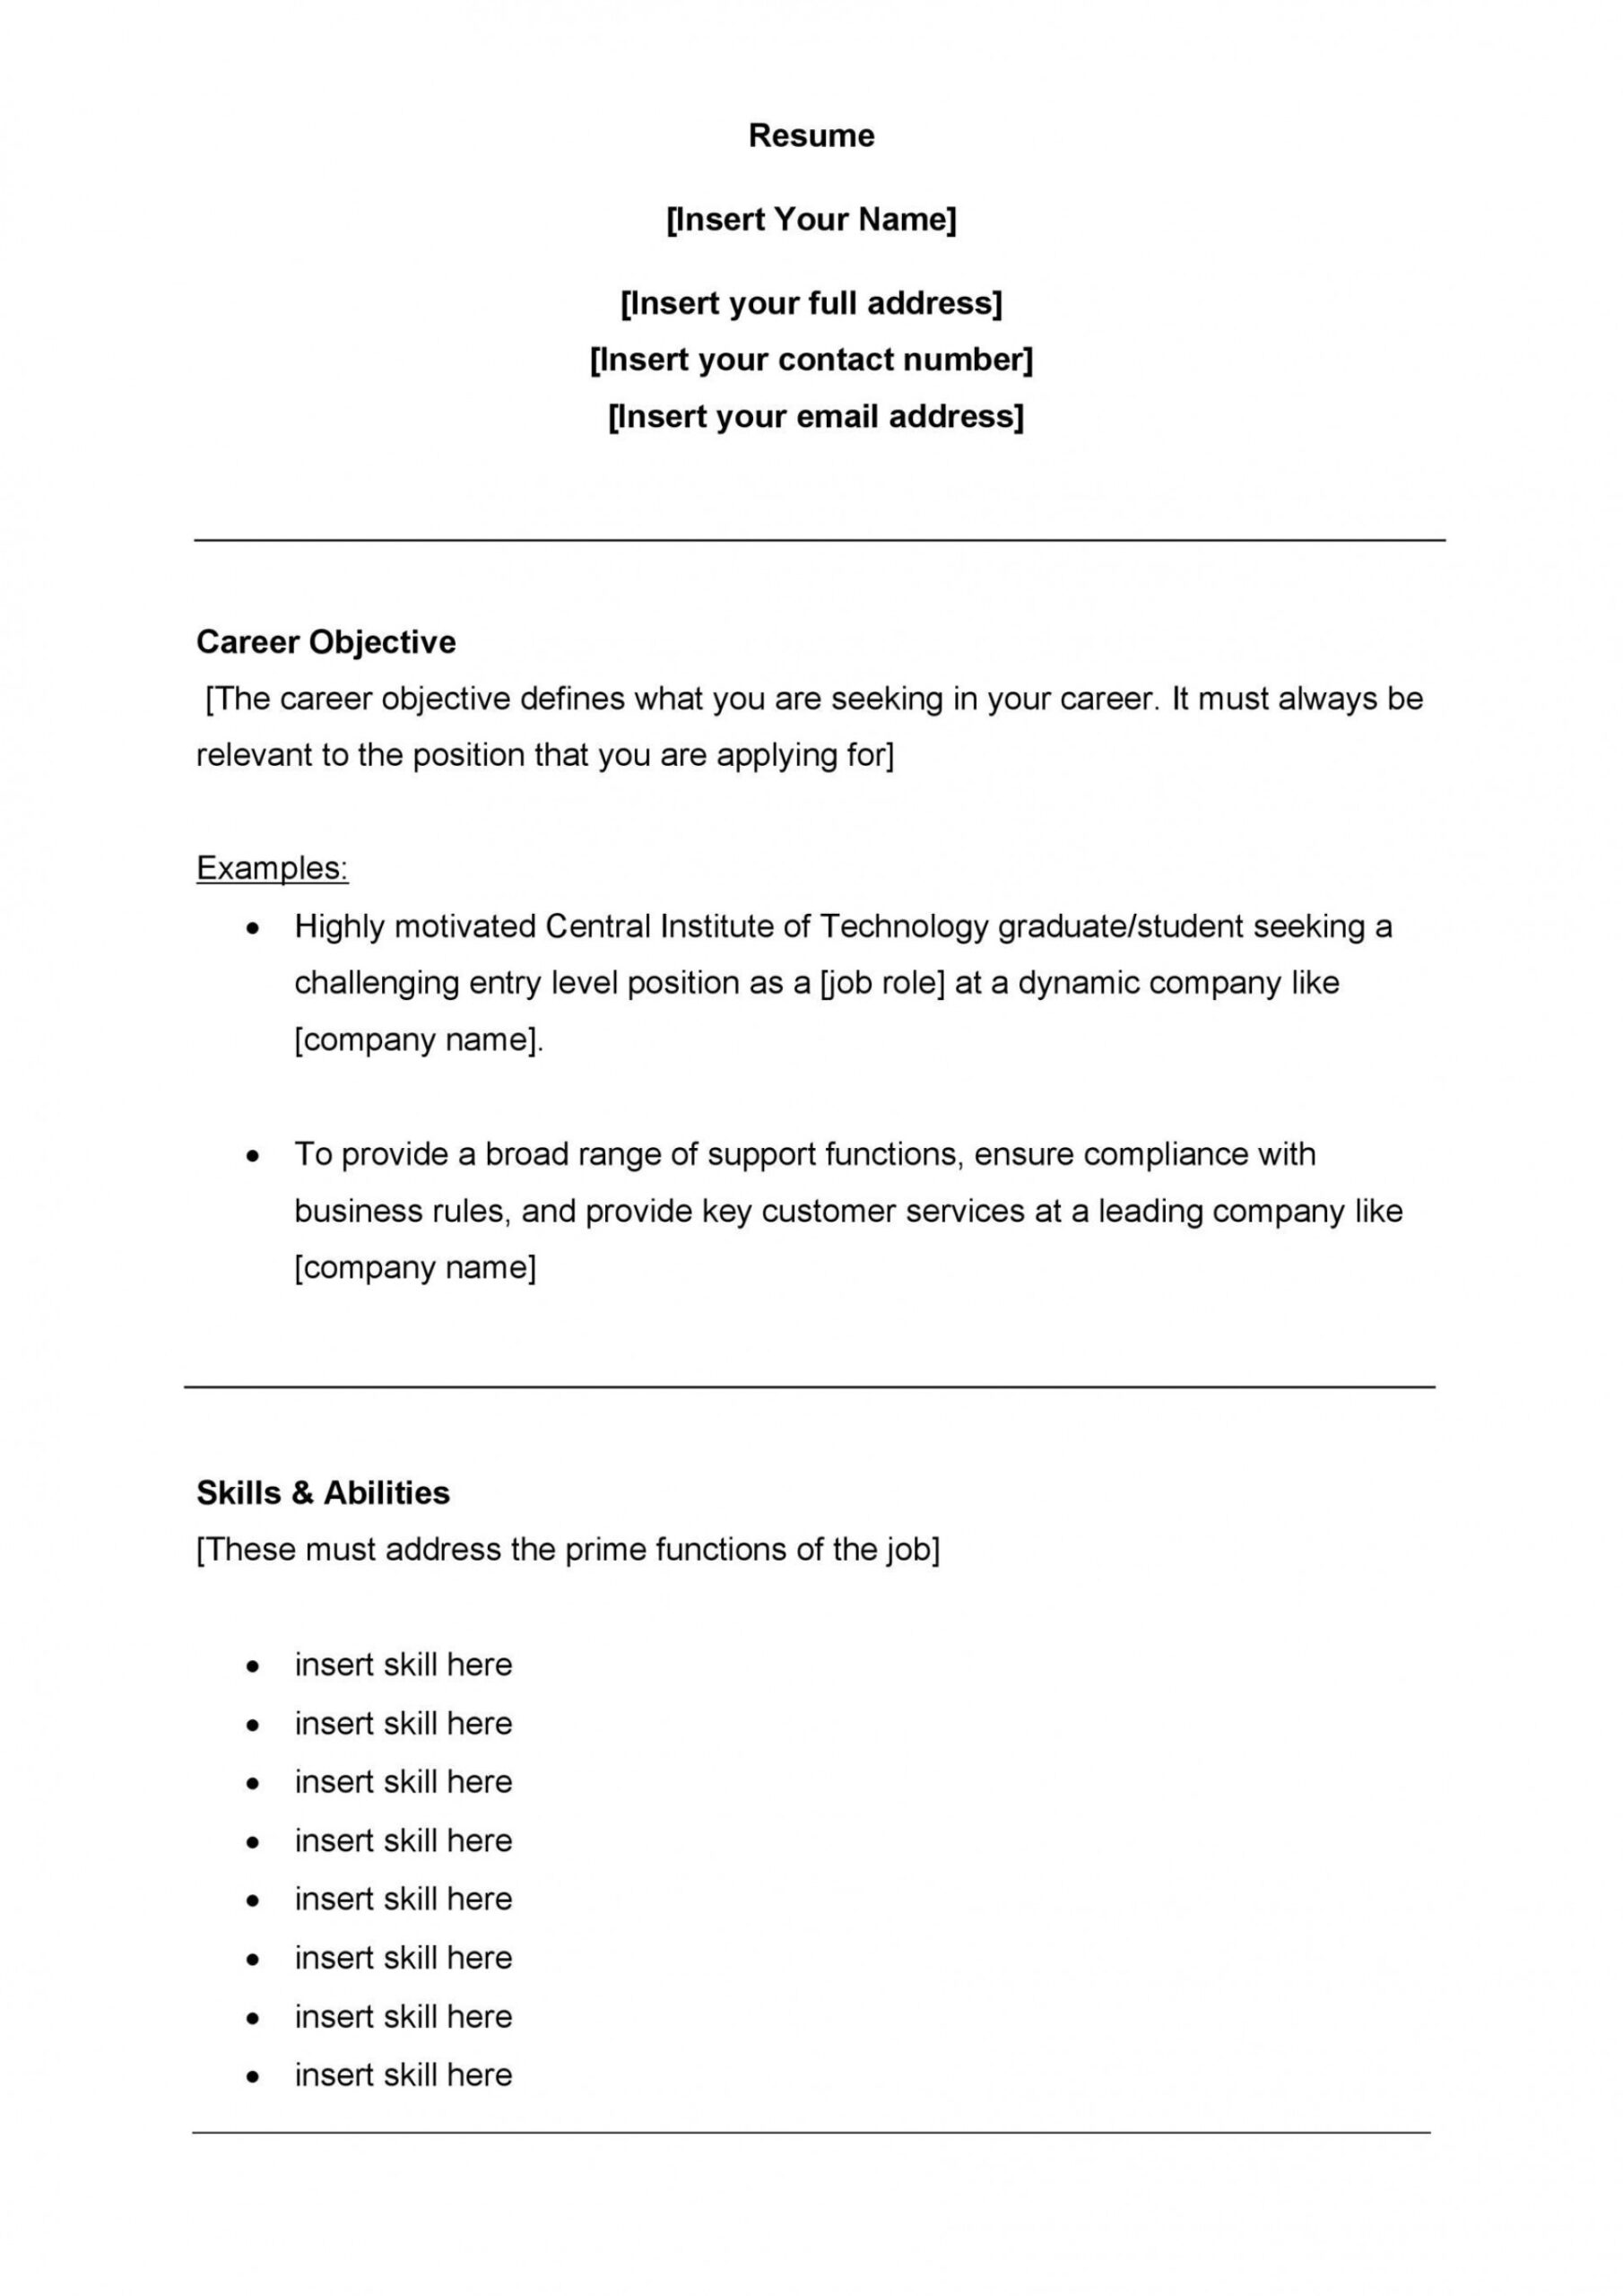 customer service resume template free addictionary career objective for best example data Resume Career Objective For Resume Customer Service